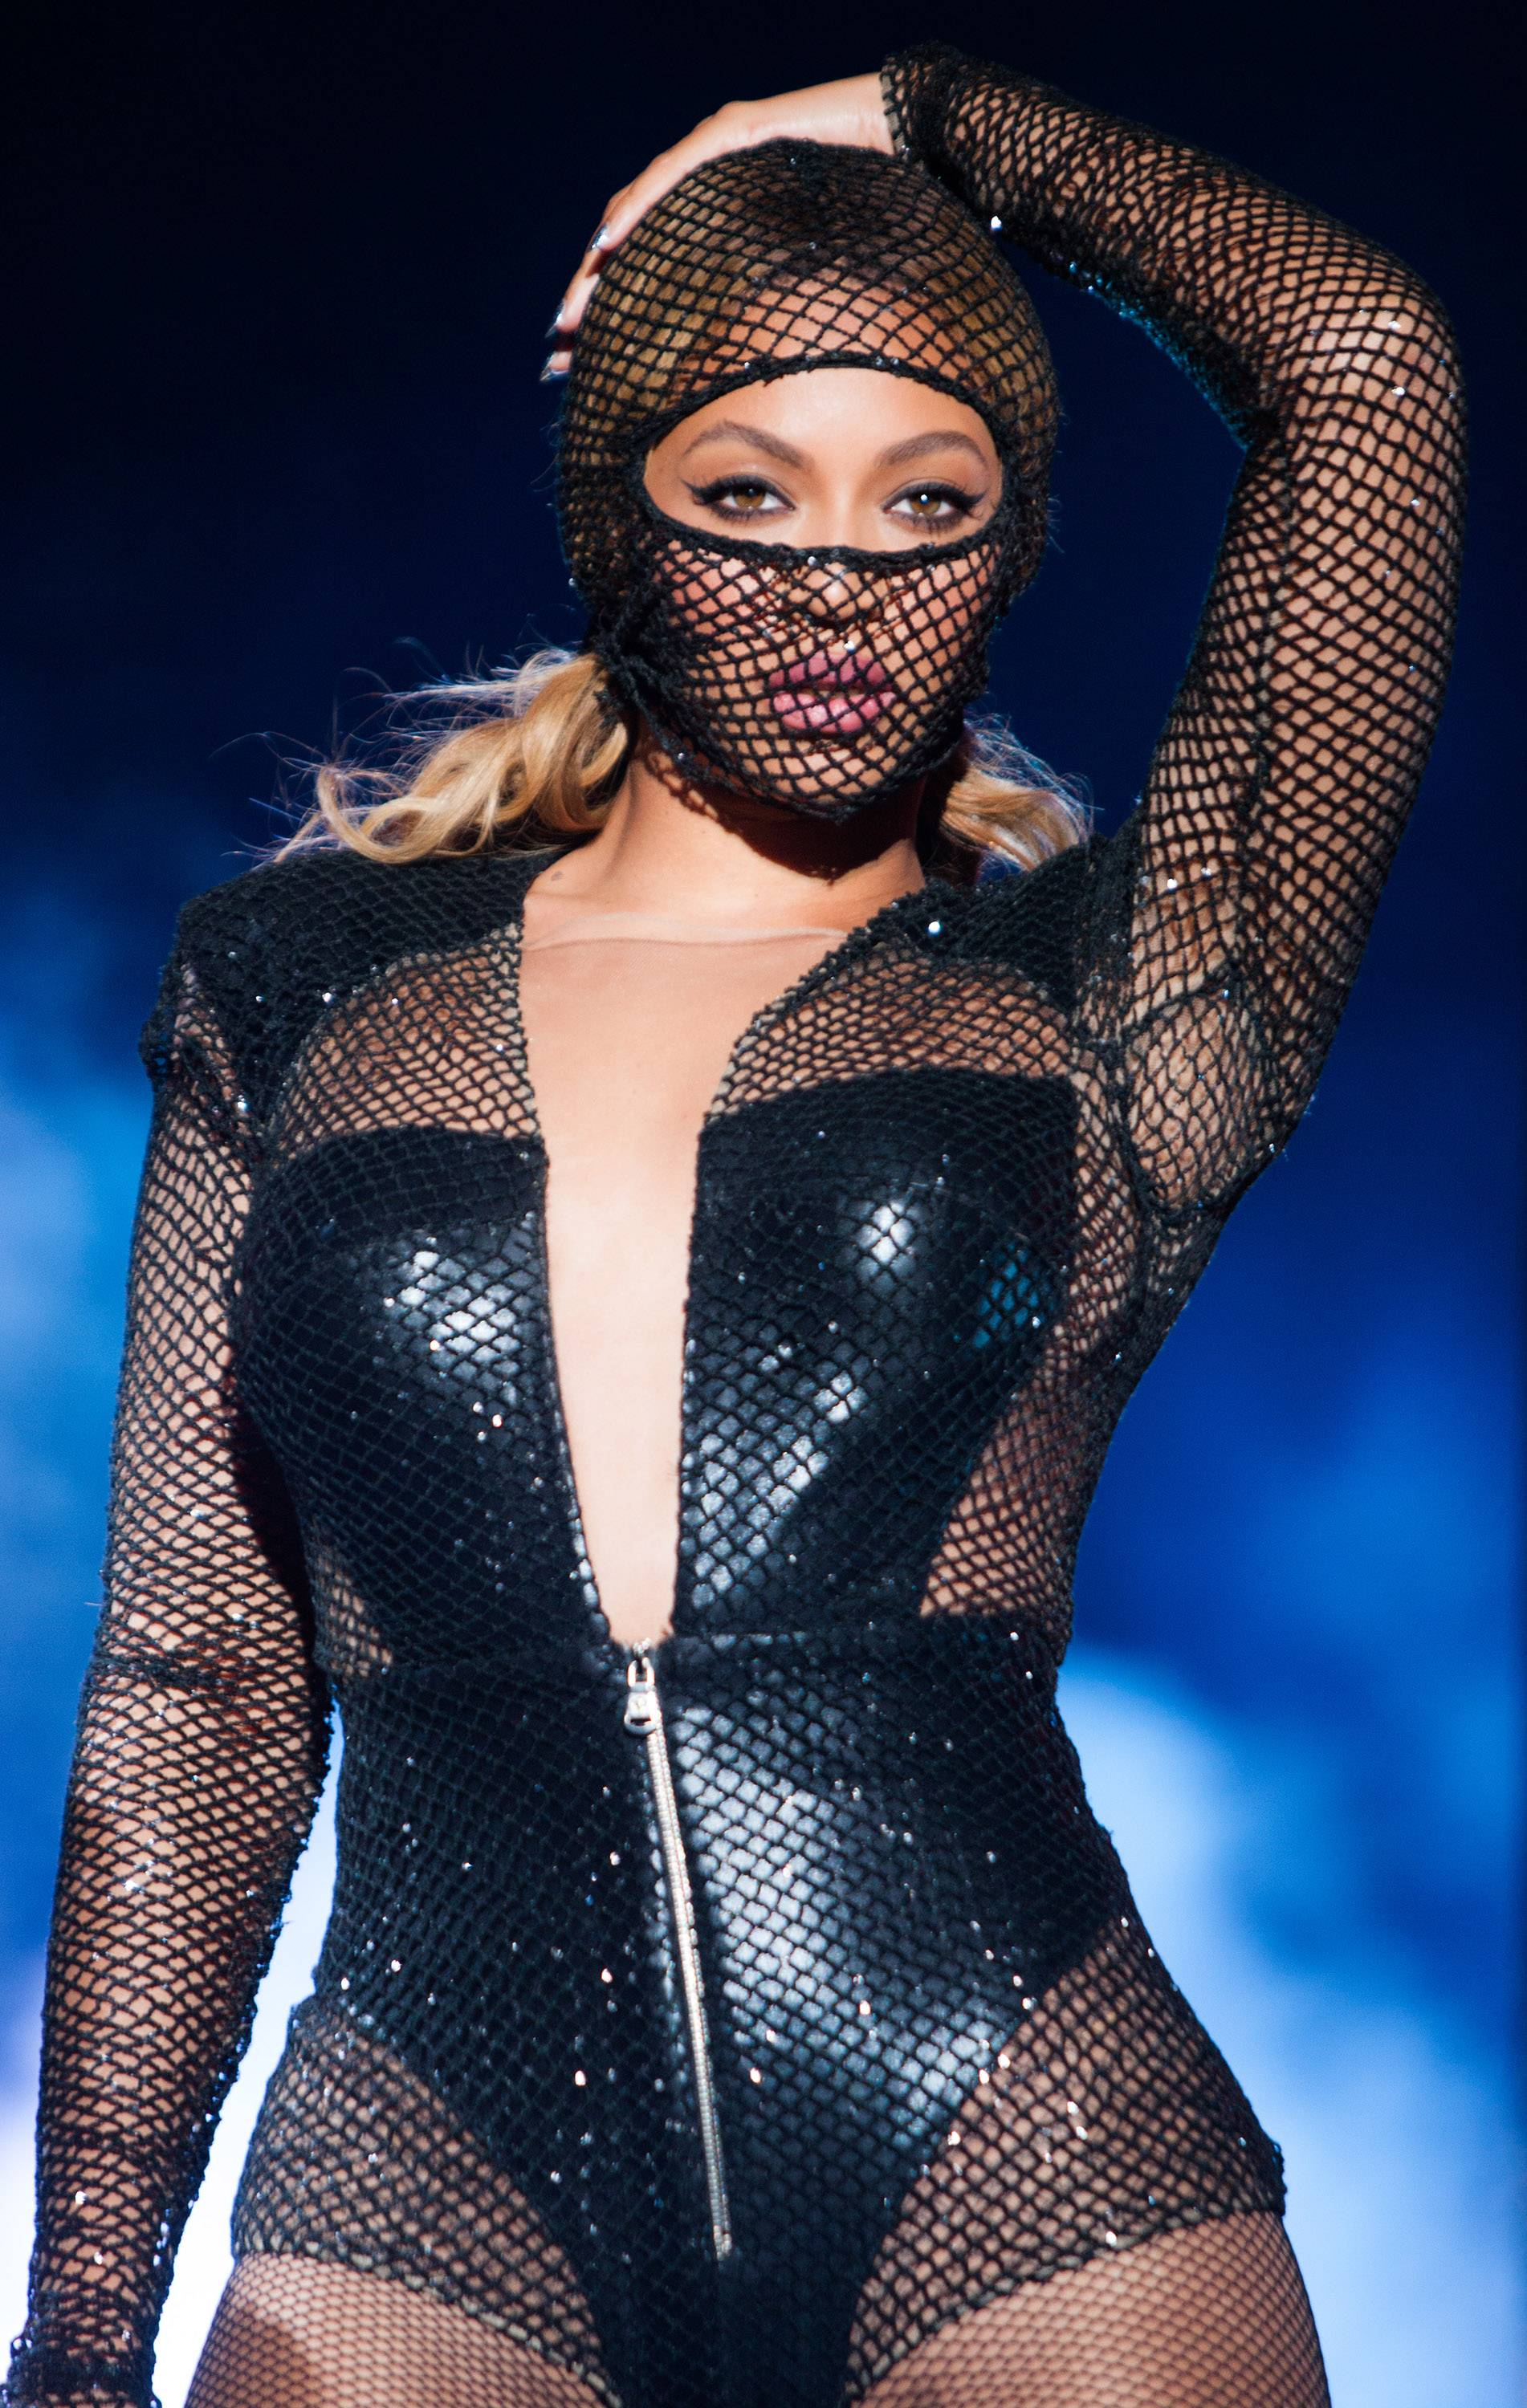 Doing a visual album has paid off for Beyonce: She's the leading nominee at the MTV Video Music Awards.